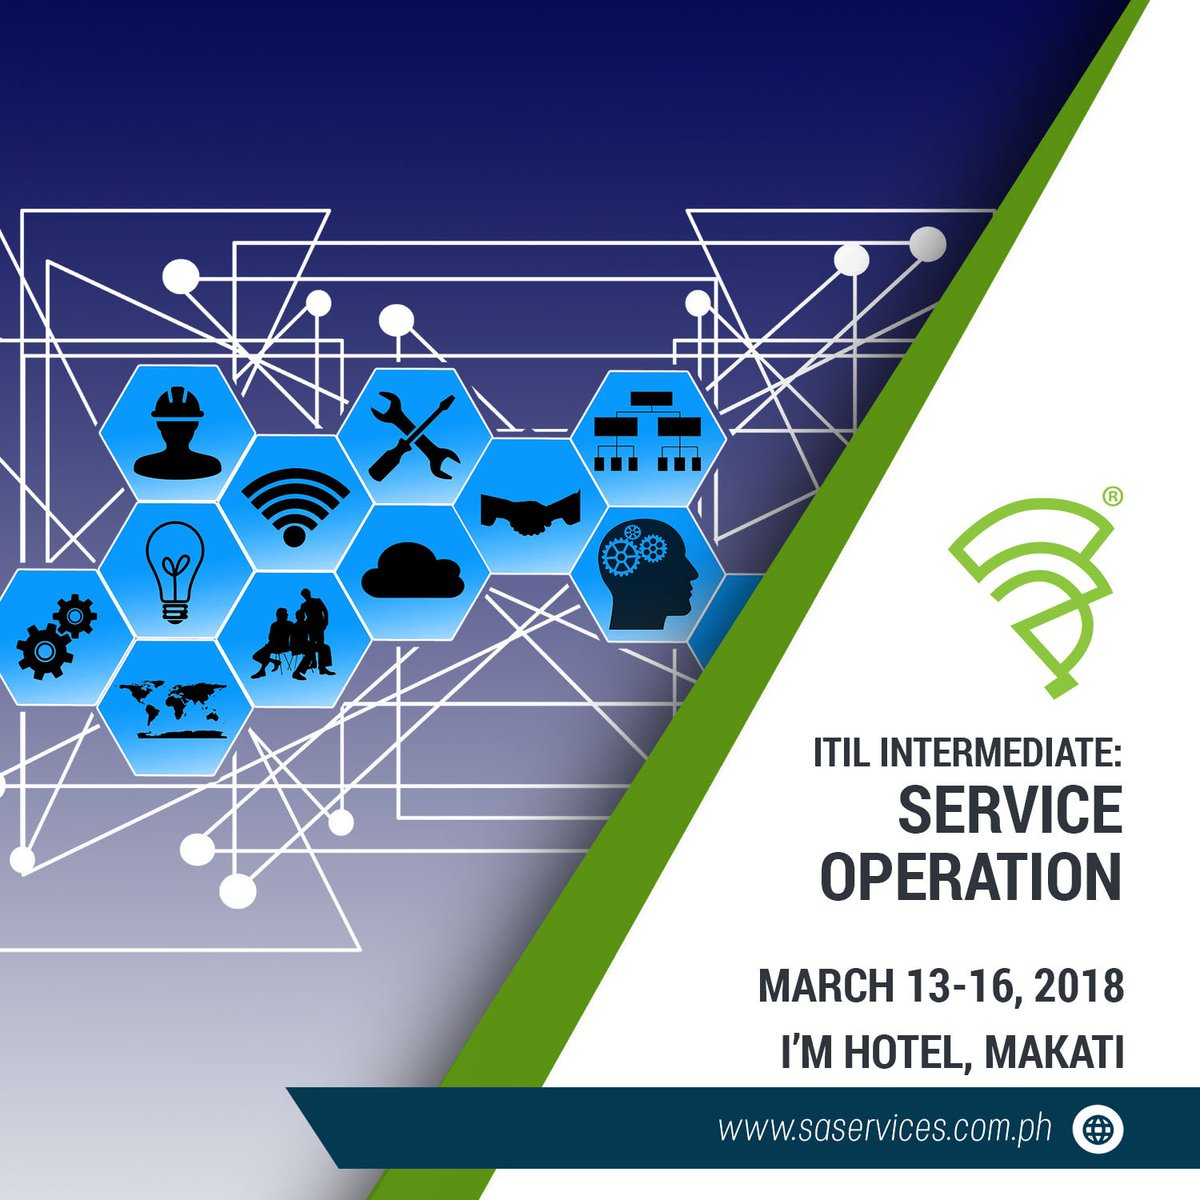 Itil hashtag on twitter we have itil service operation for you this coming march sign up now and well see you on 13 16 march 2018 at f1 hotel in taguig xflitez Image collections